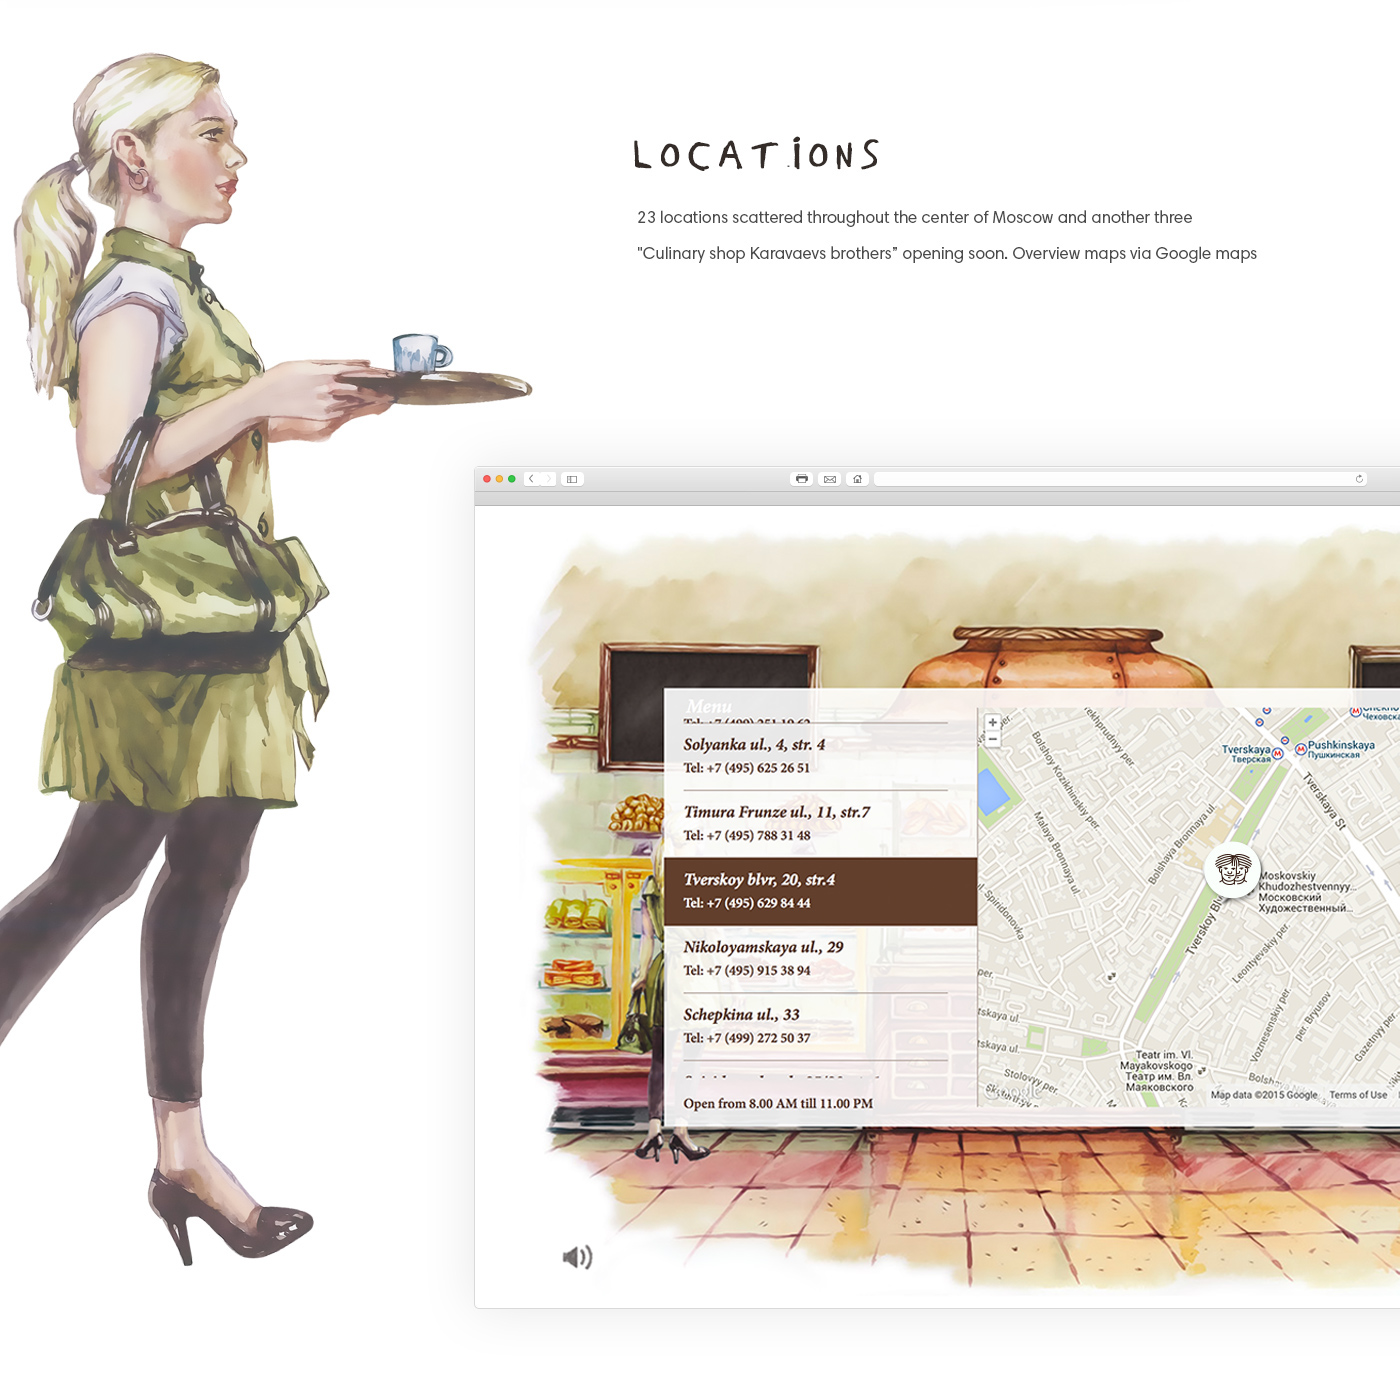 Webdesign artzgeo characters Website site draw design art watercolor pen Culinary shop cake cooking